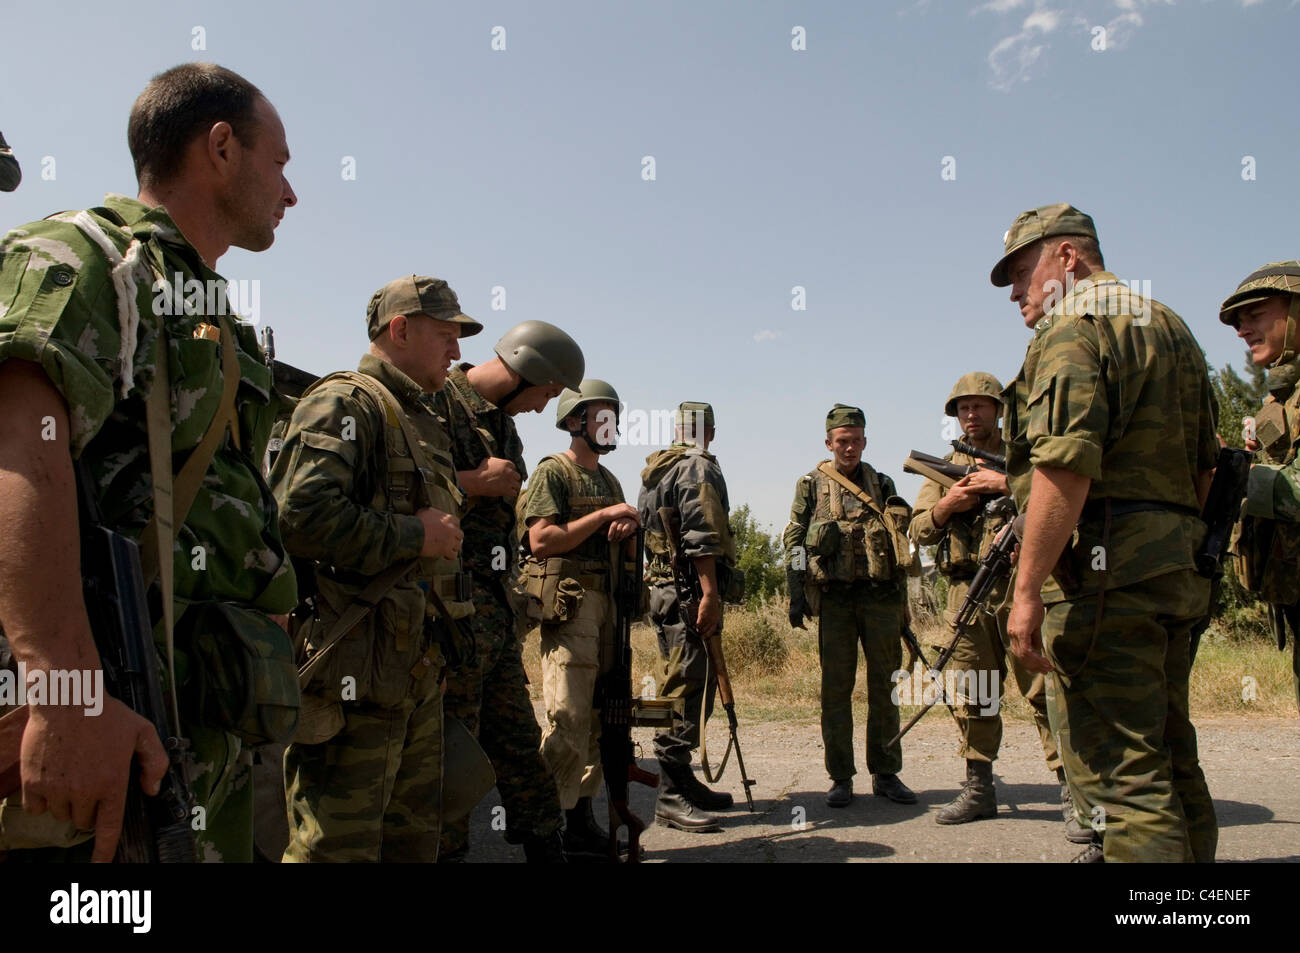 Russian soldiers receive instructions from their commander before entering the city Gori, during the Russo-Georgian - Stock Image